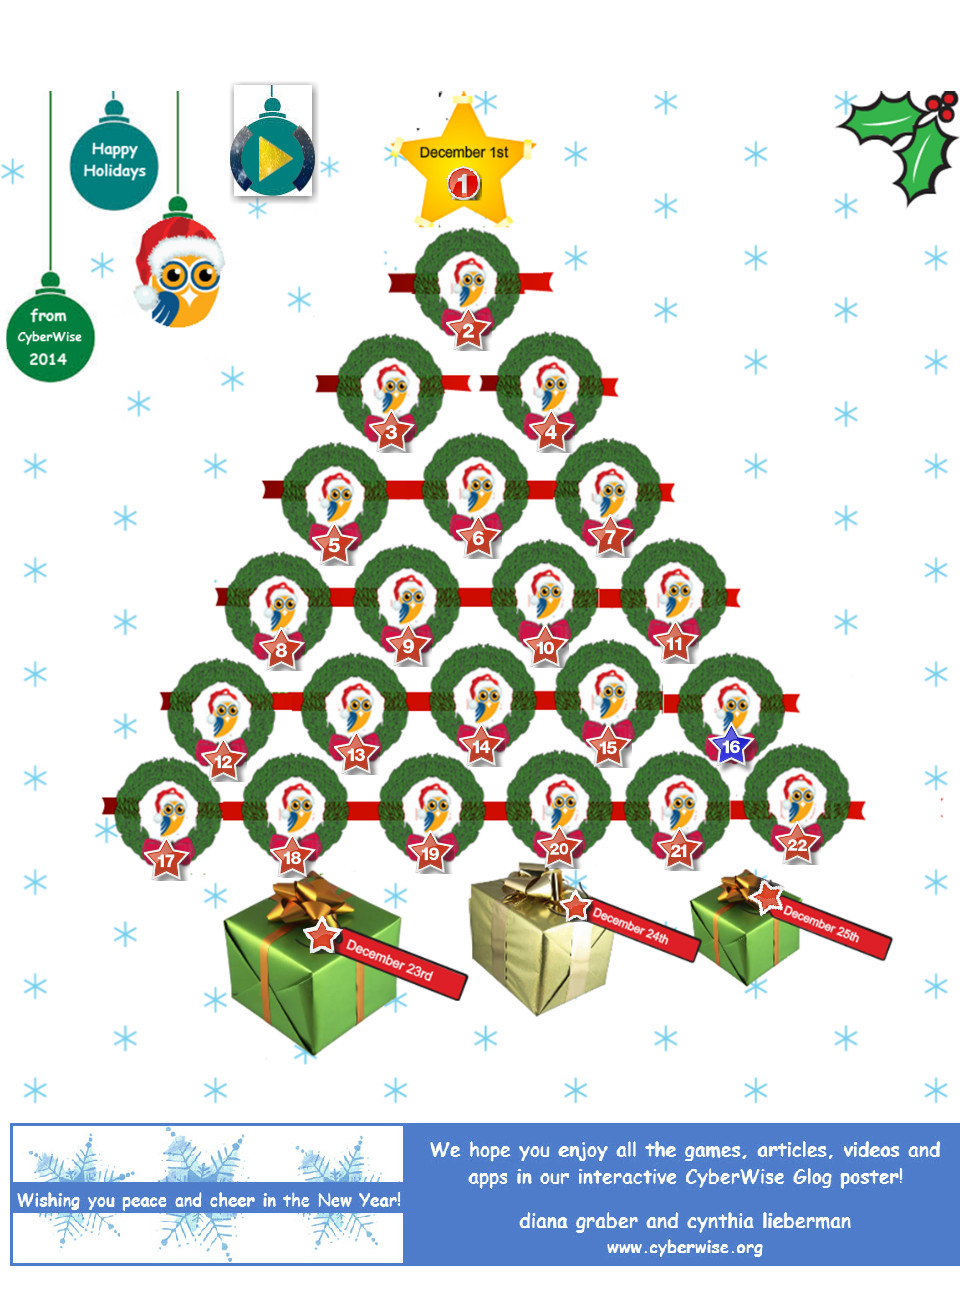 CYBERWISE HOLIDAY COUNTDOWN CALENDAR 2014